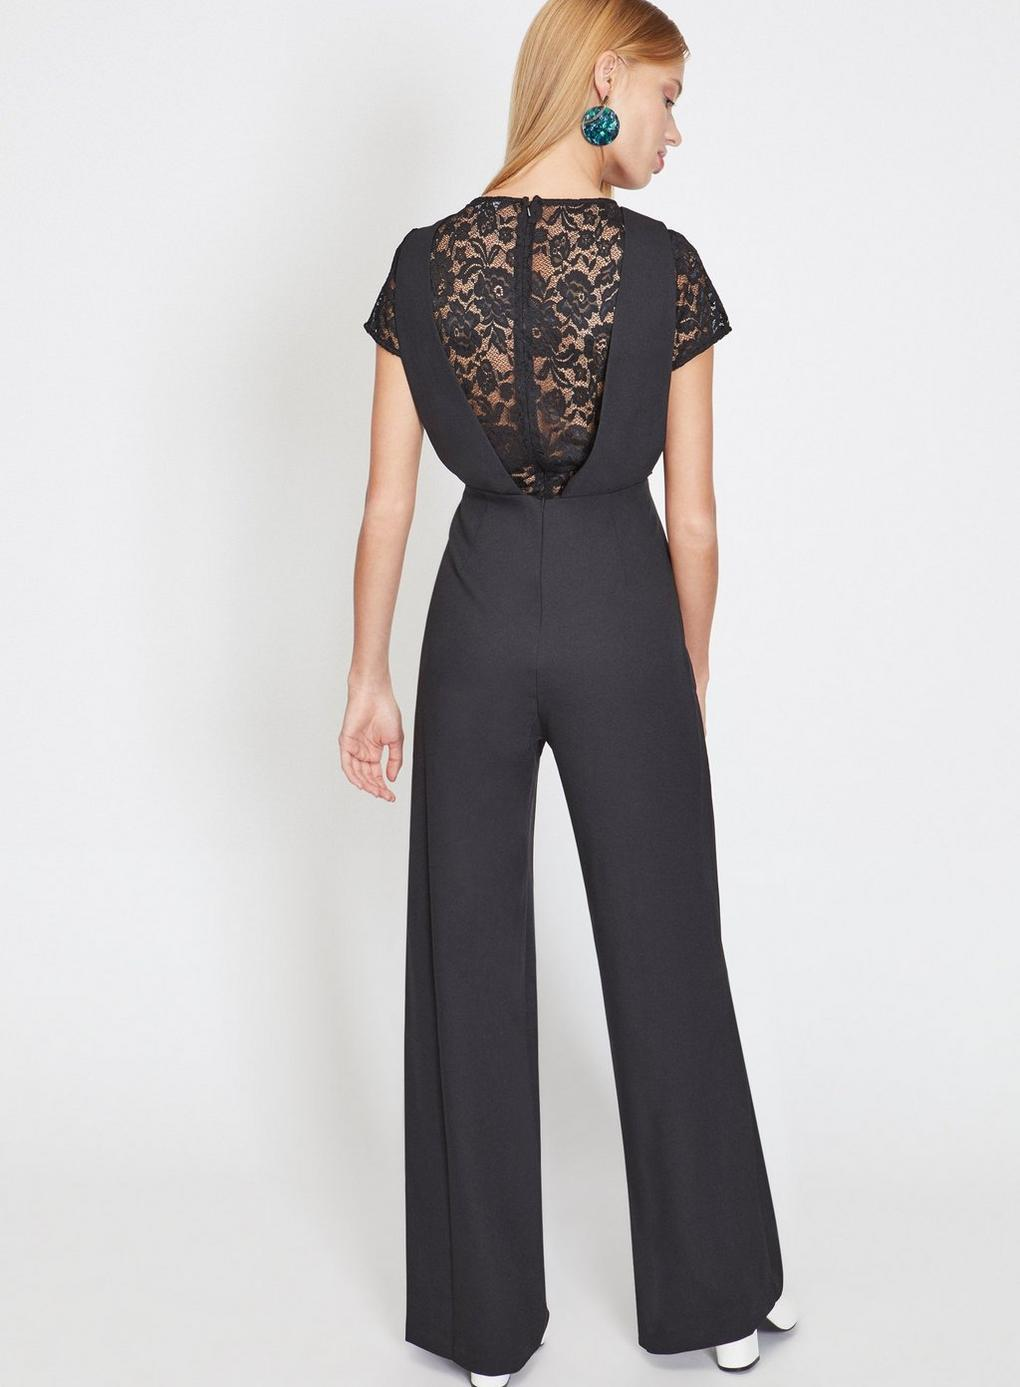 53d43ceed3b Miss Selfridge Black 2-in-1 Lace Jumpsuit in Black - Lyst